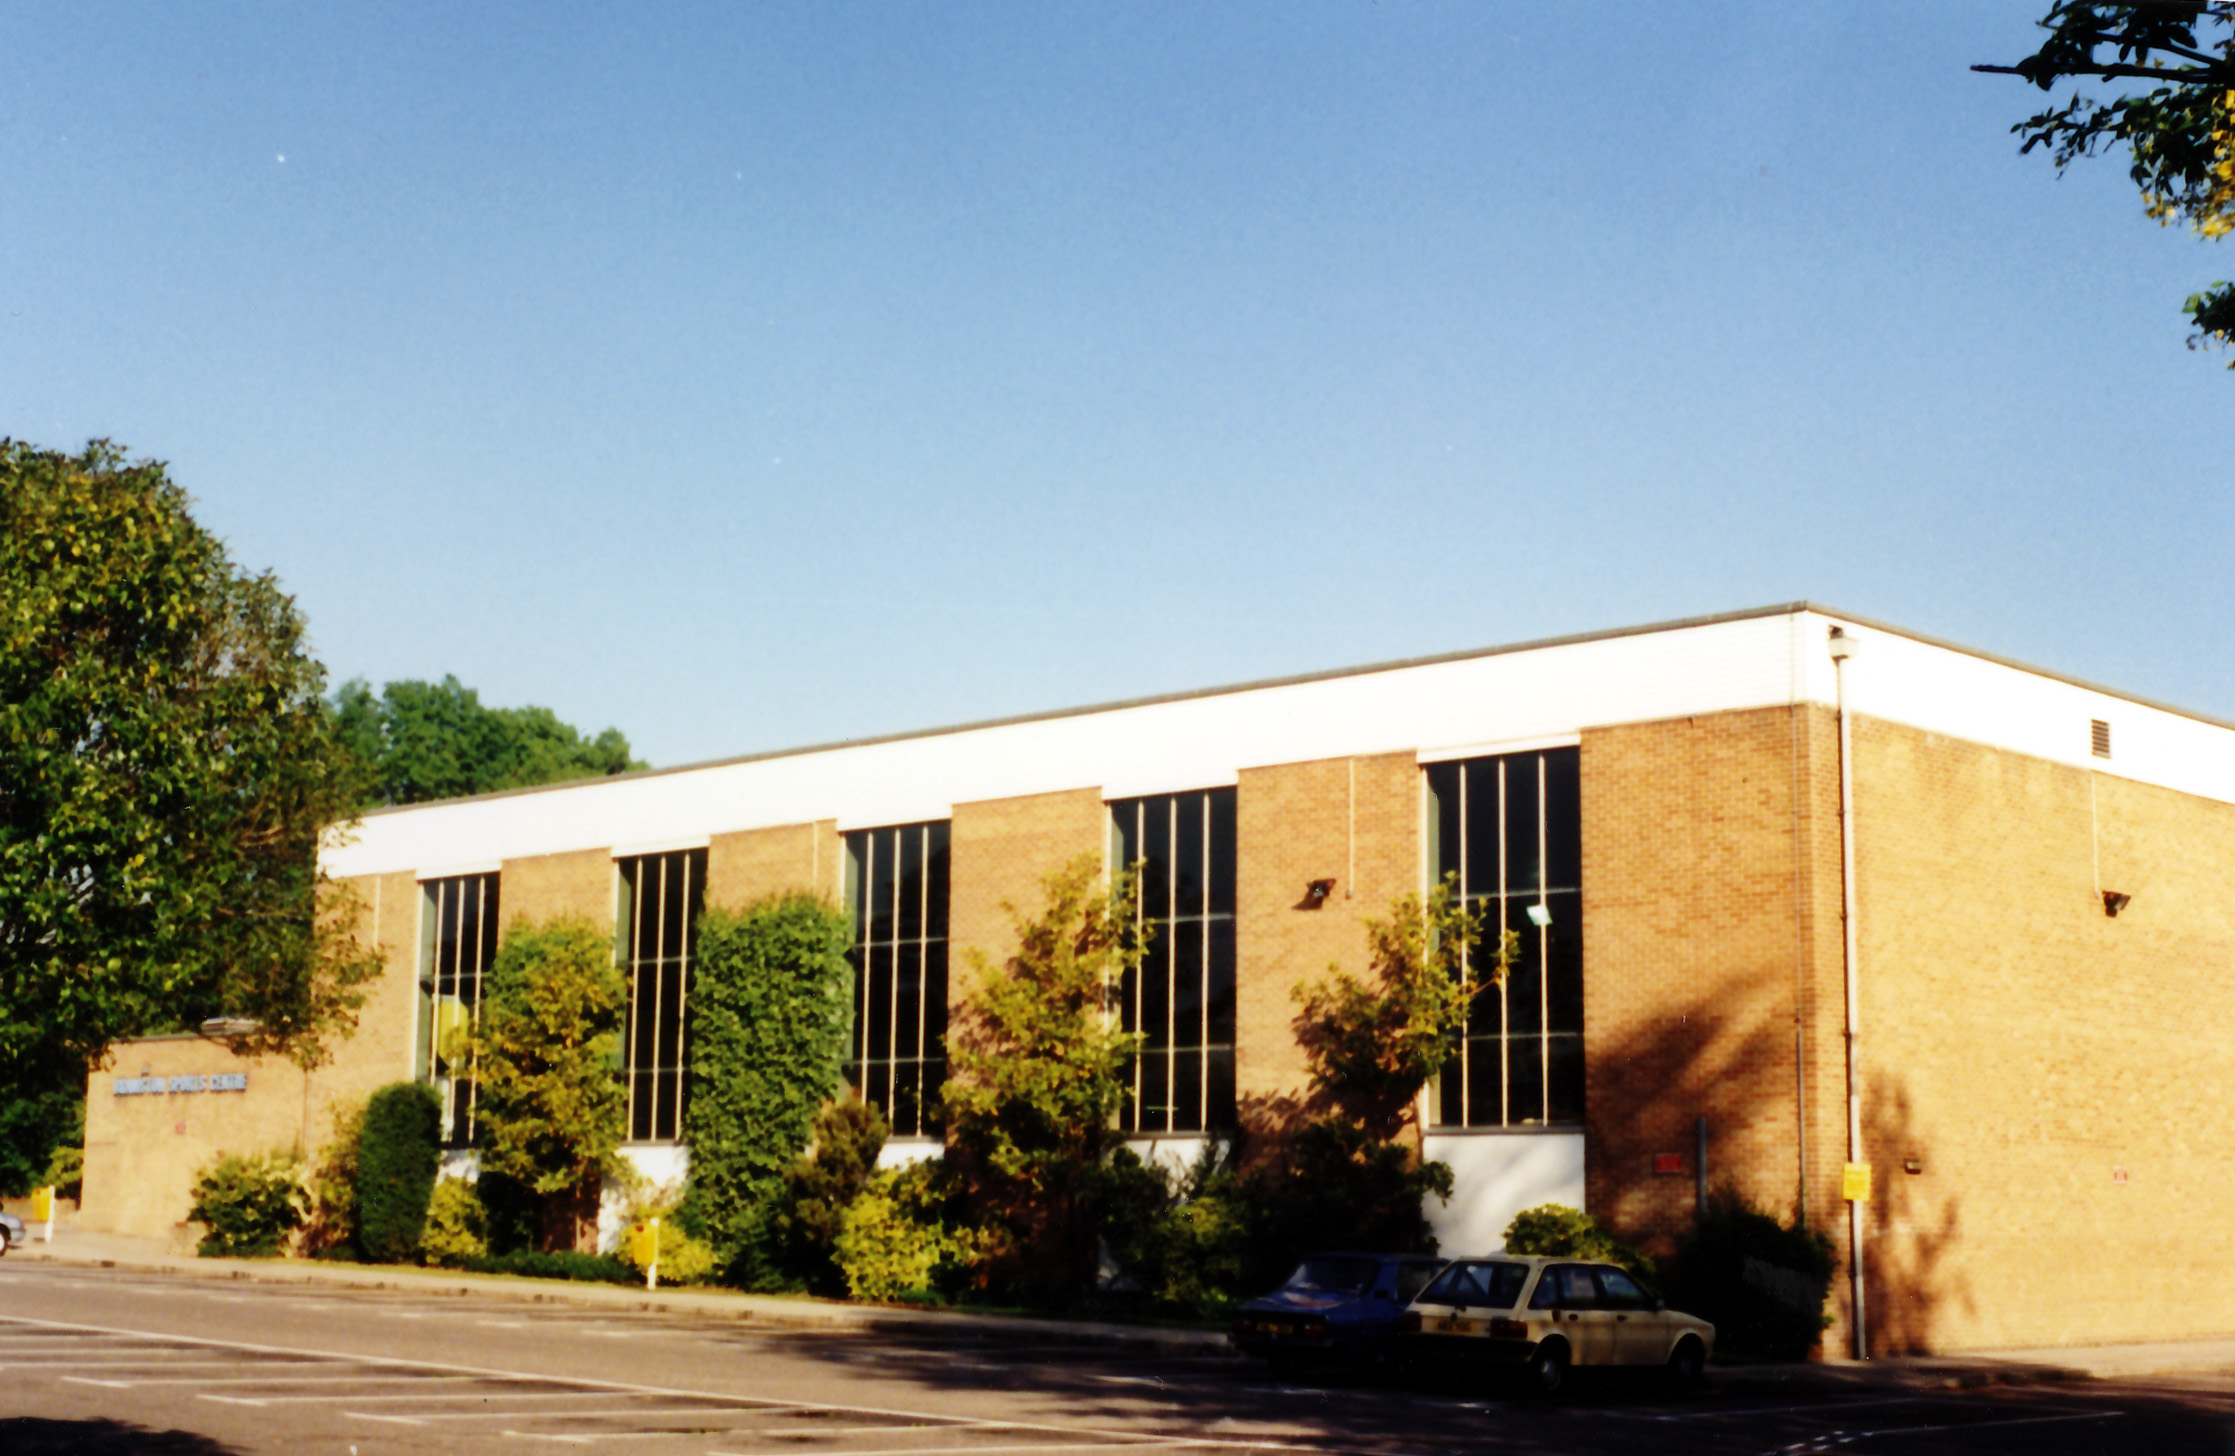 Bramston Sports Centre and Swimming Pool, opened in 1974 as one of the features of the Town expansion.